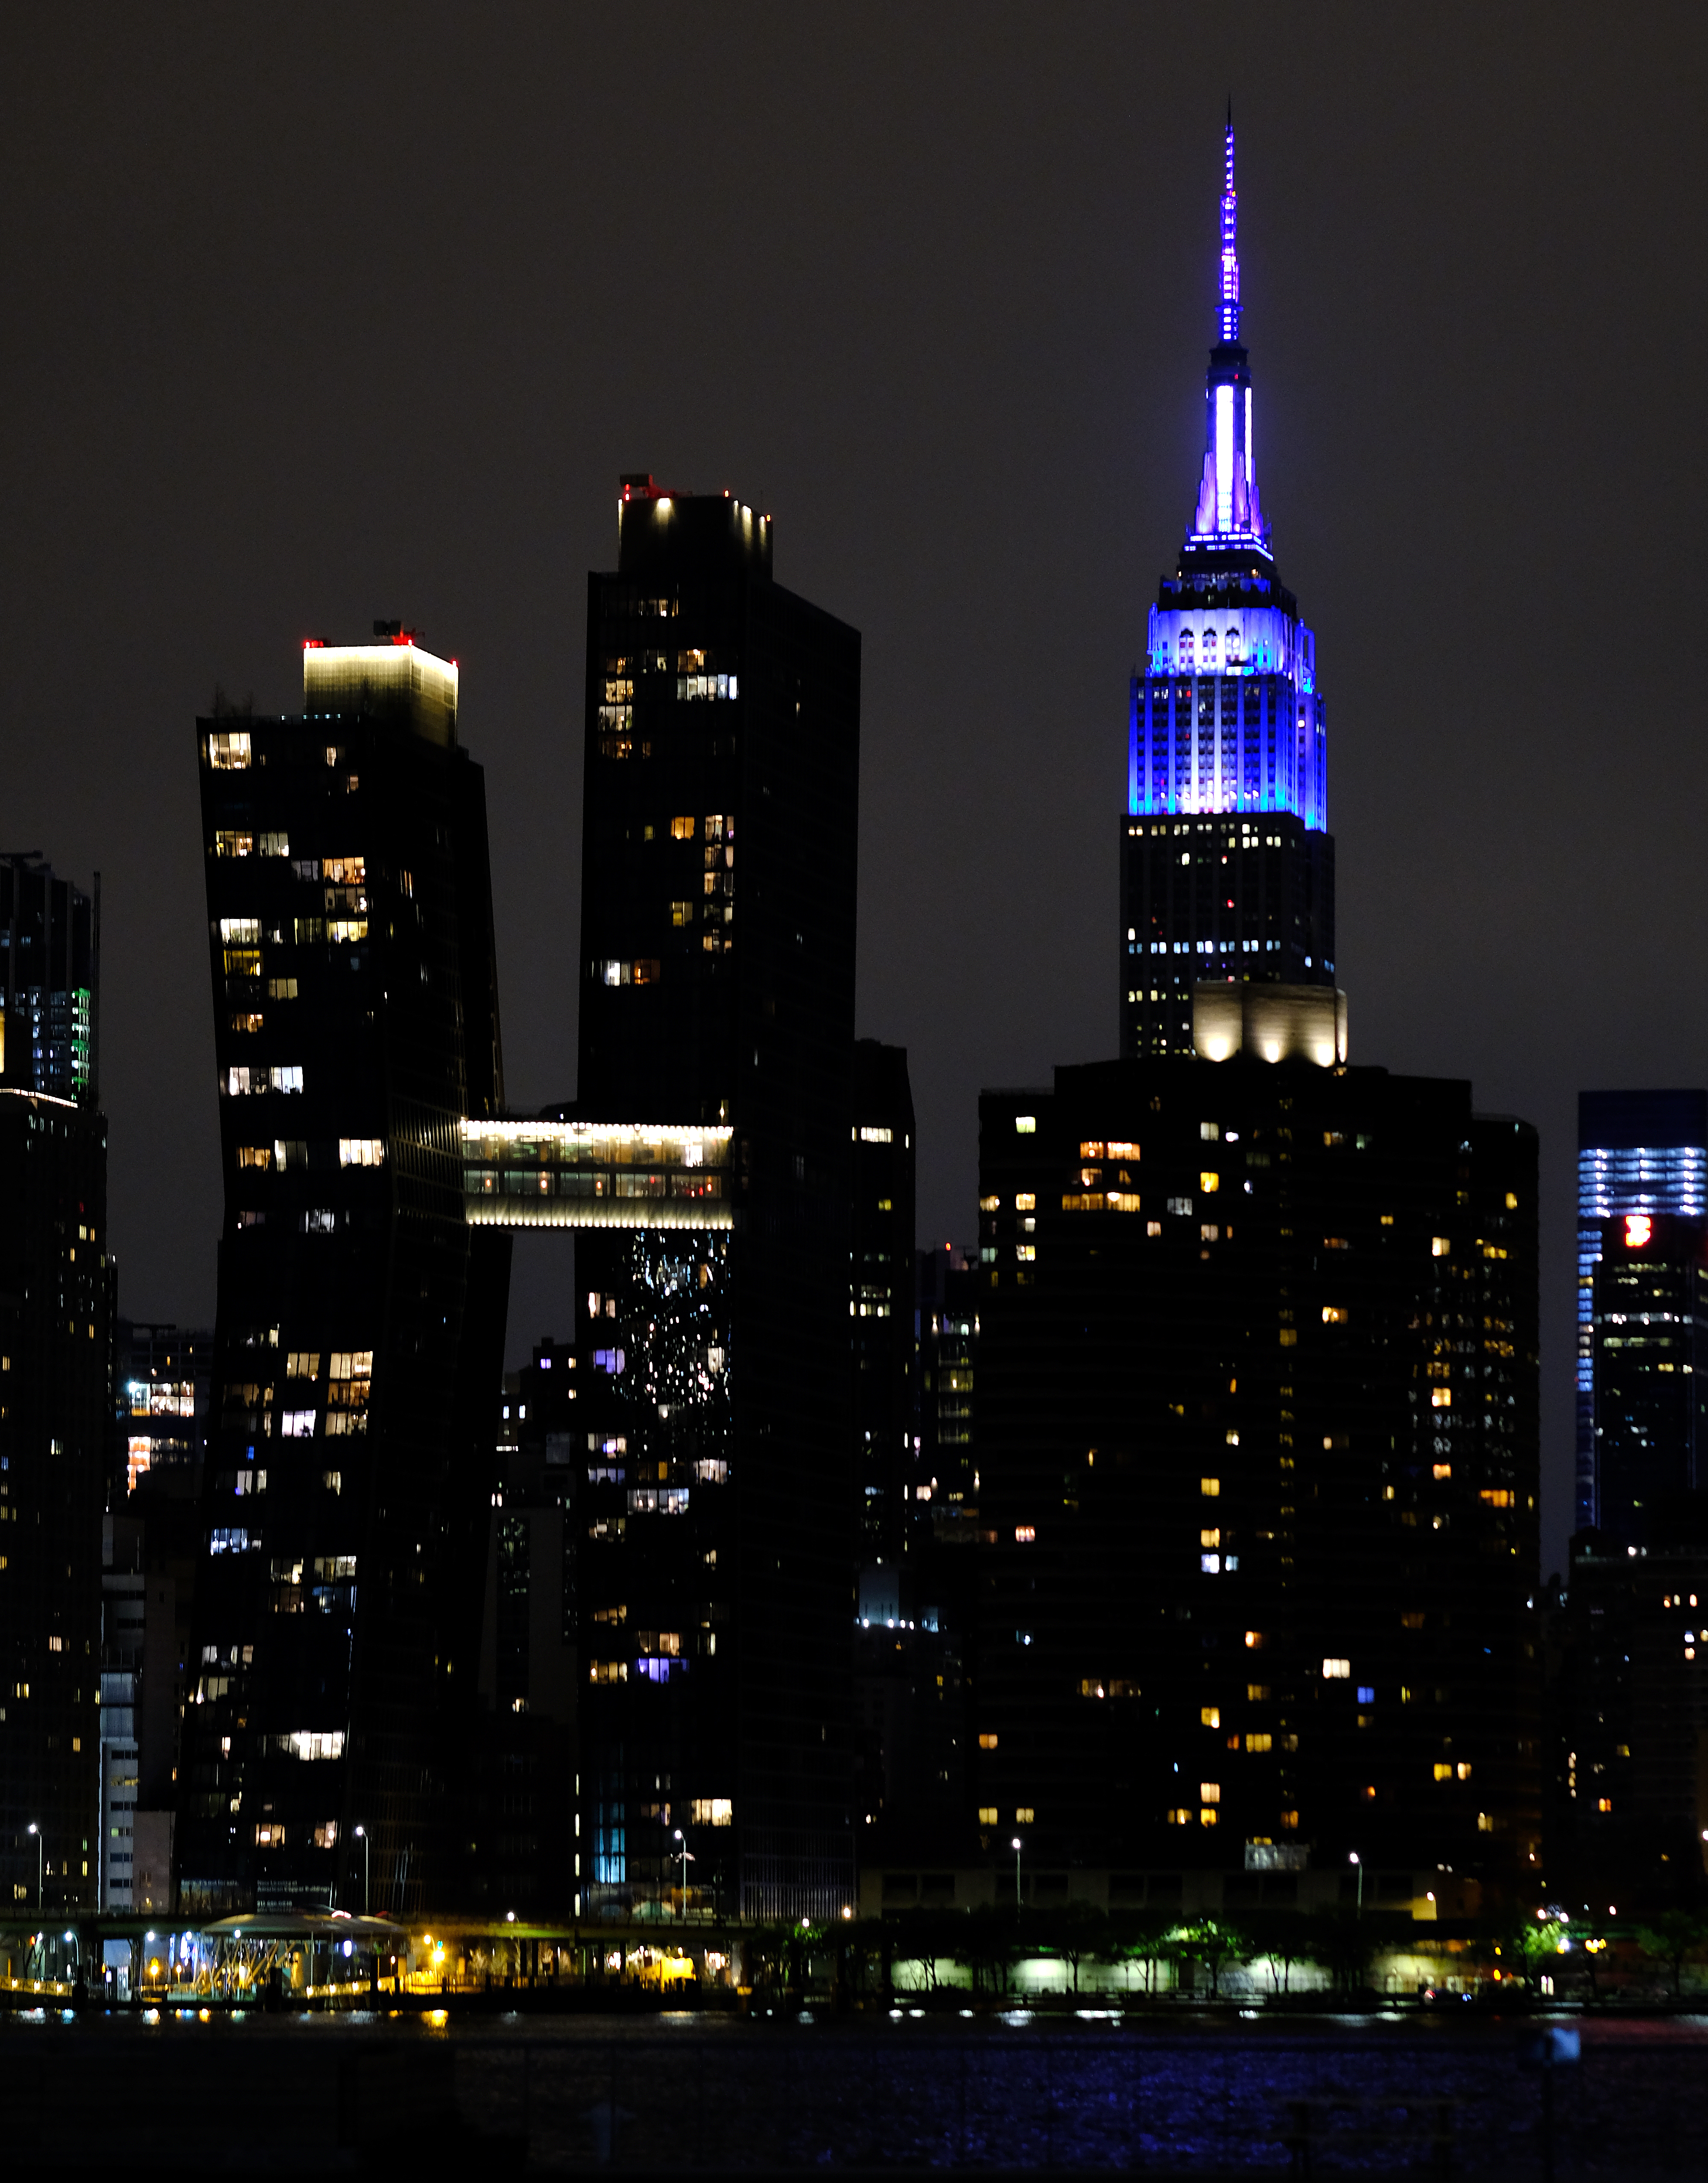 NEW YORK, NEW YORK - APRIL 09: The Empire State Building is illuminated in blue as part of the #LightItBlue for Health Workers movement on April 09, 2020 in New York City. Landmarks and buildings across the nation are displaying blue lights to show support for health care workers and first responders on the front lines of the COVID-19 pandemic. (Photo by Dimitrios Kambouris/Getty Images)